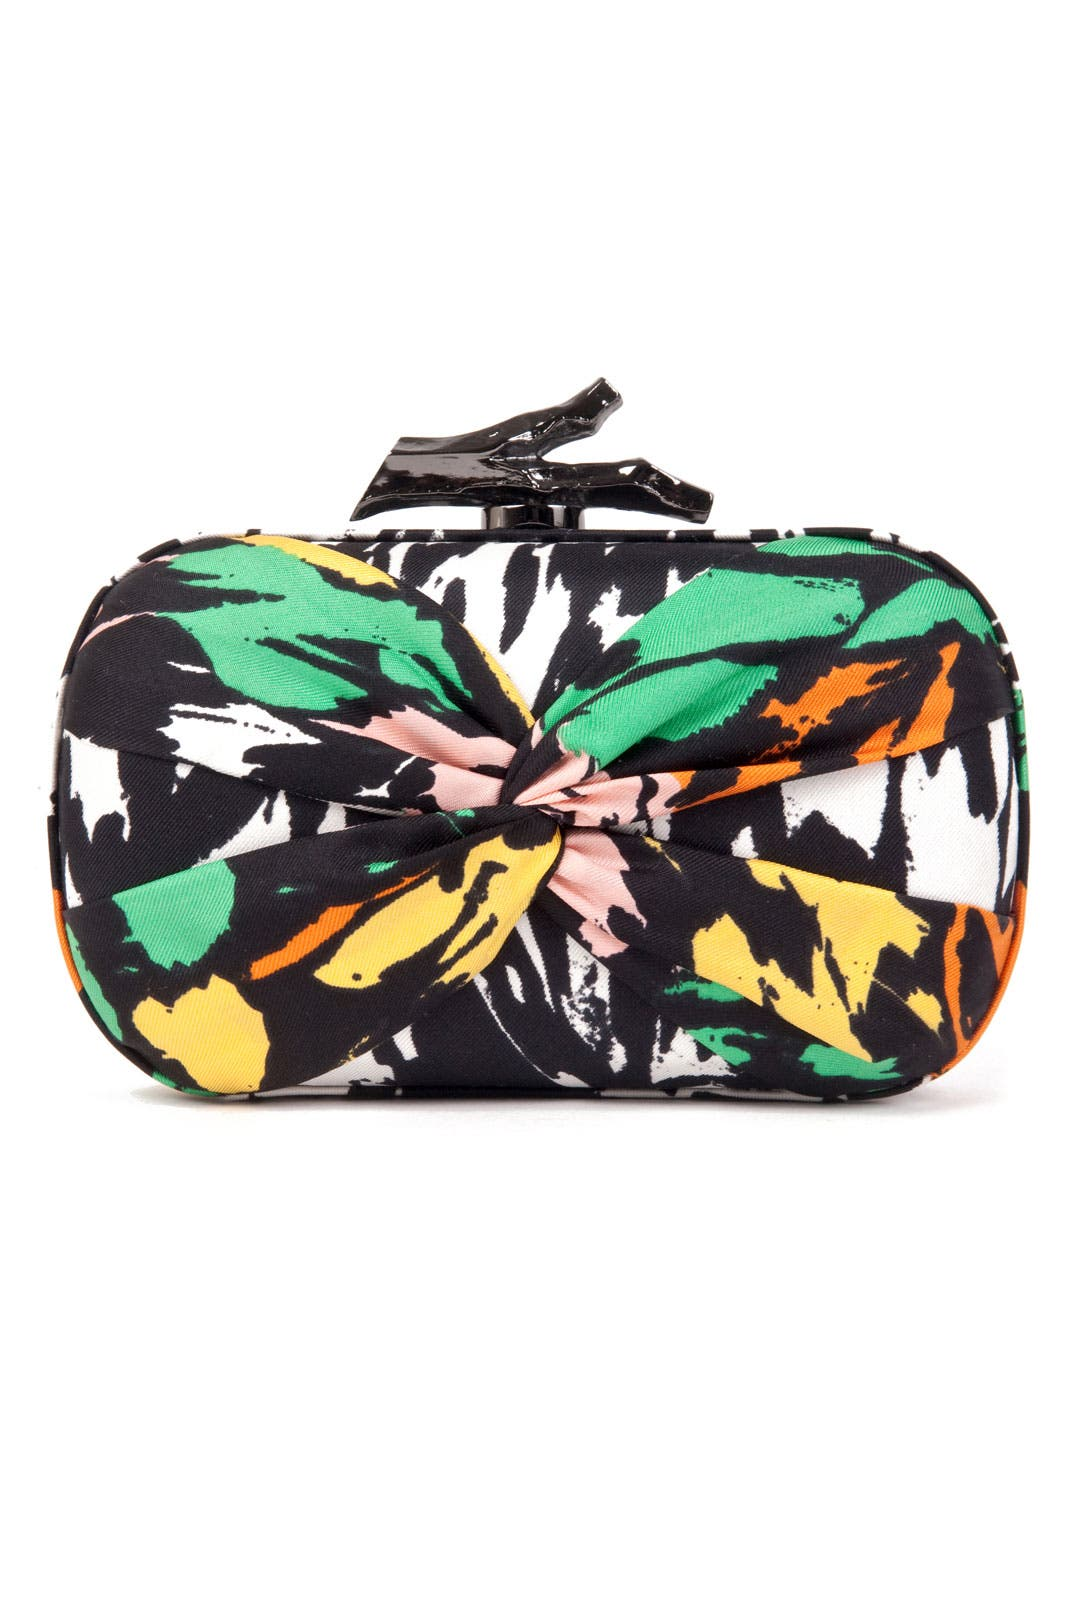 Jungle Dream Clutch by Diane von Furstenberg Handbags